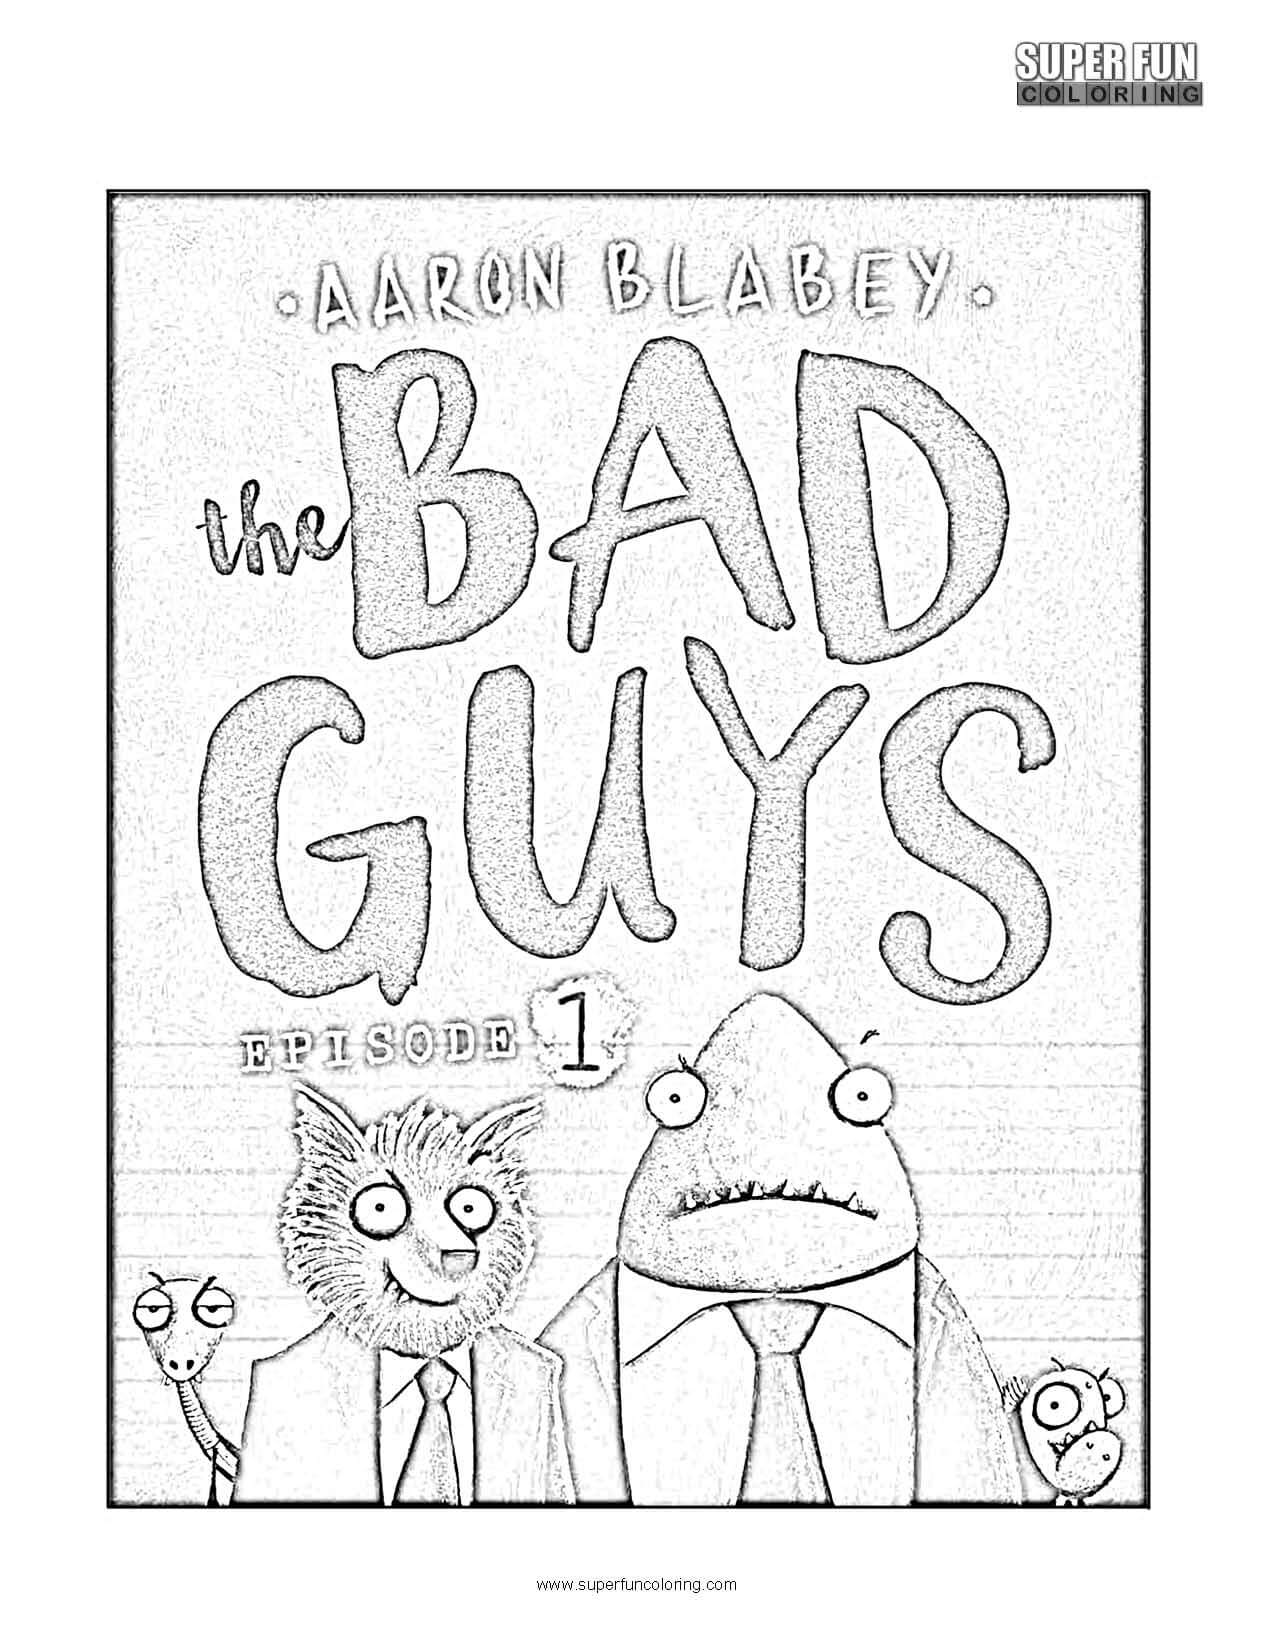 The Bad Guys Coloring Page phone app